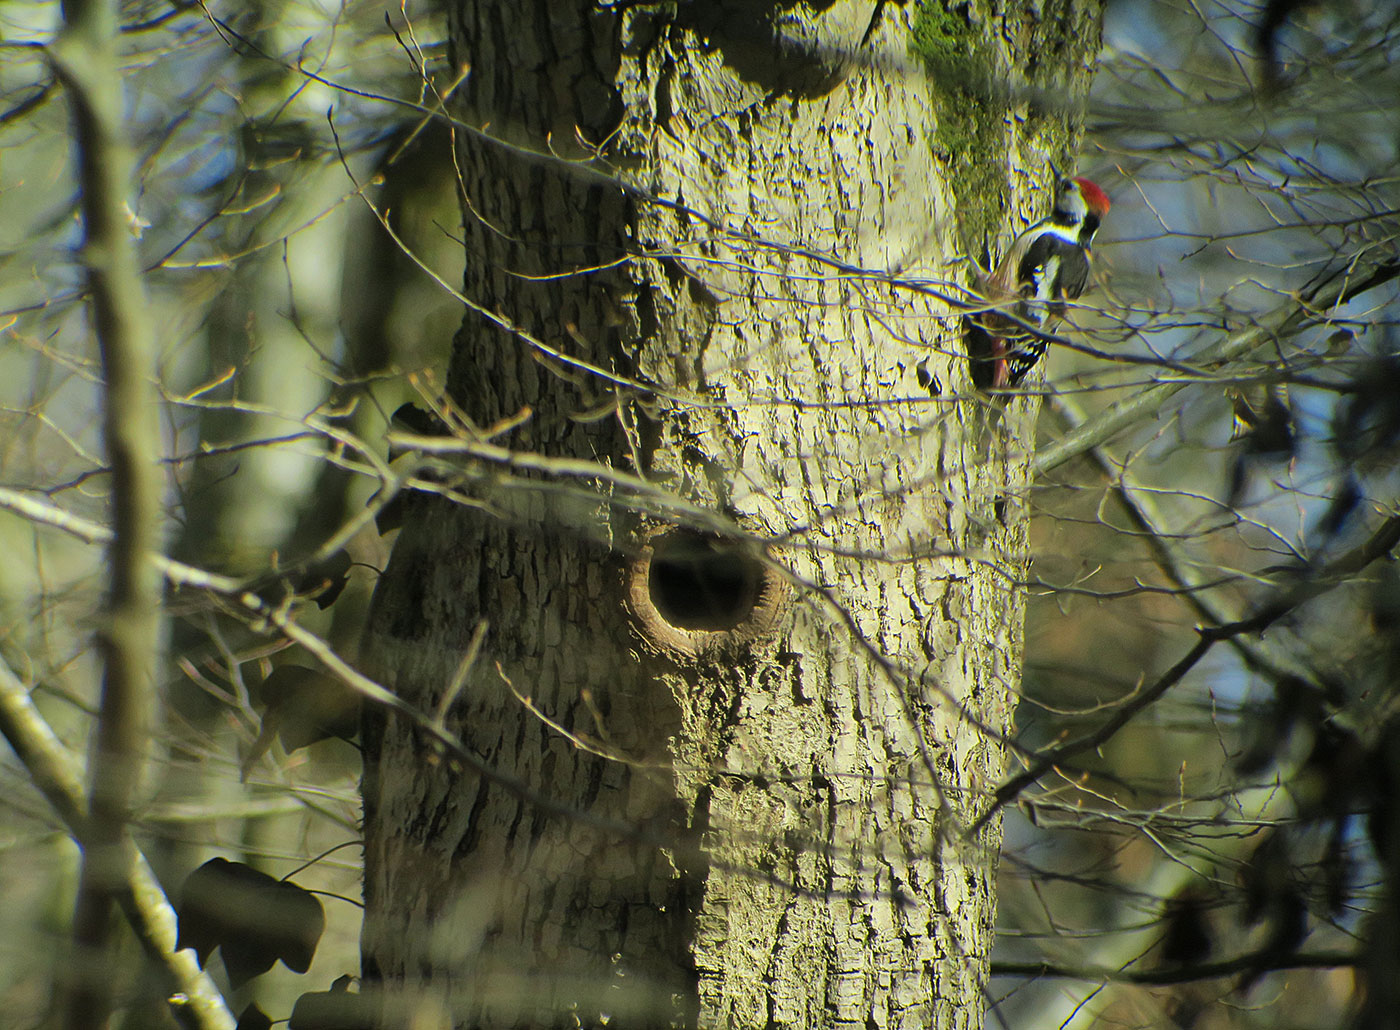 03_mittelspecht_middle-spotted-woodpecker_ammersee_2019-02-23_7097